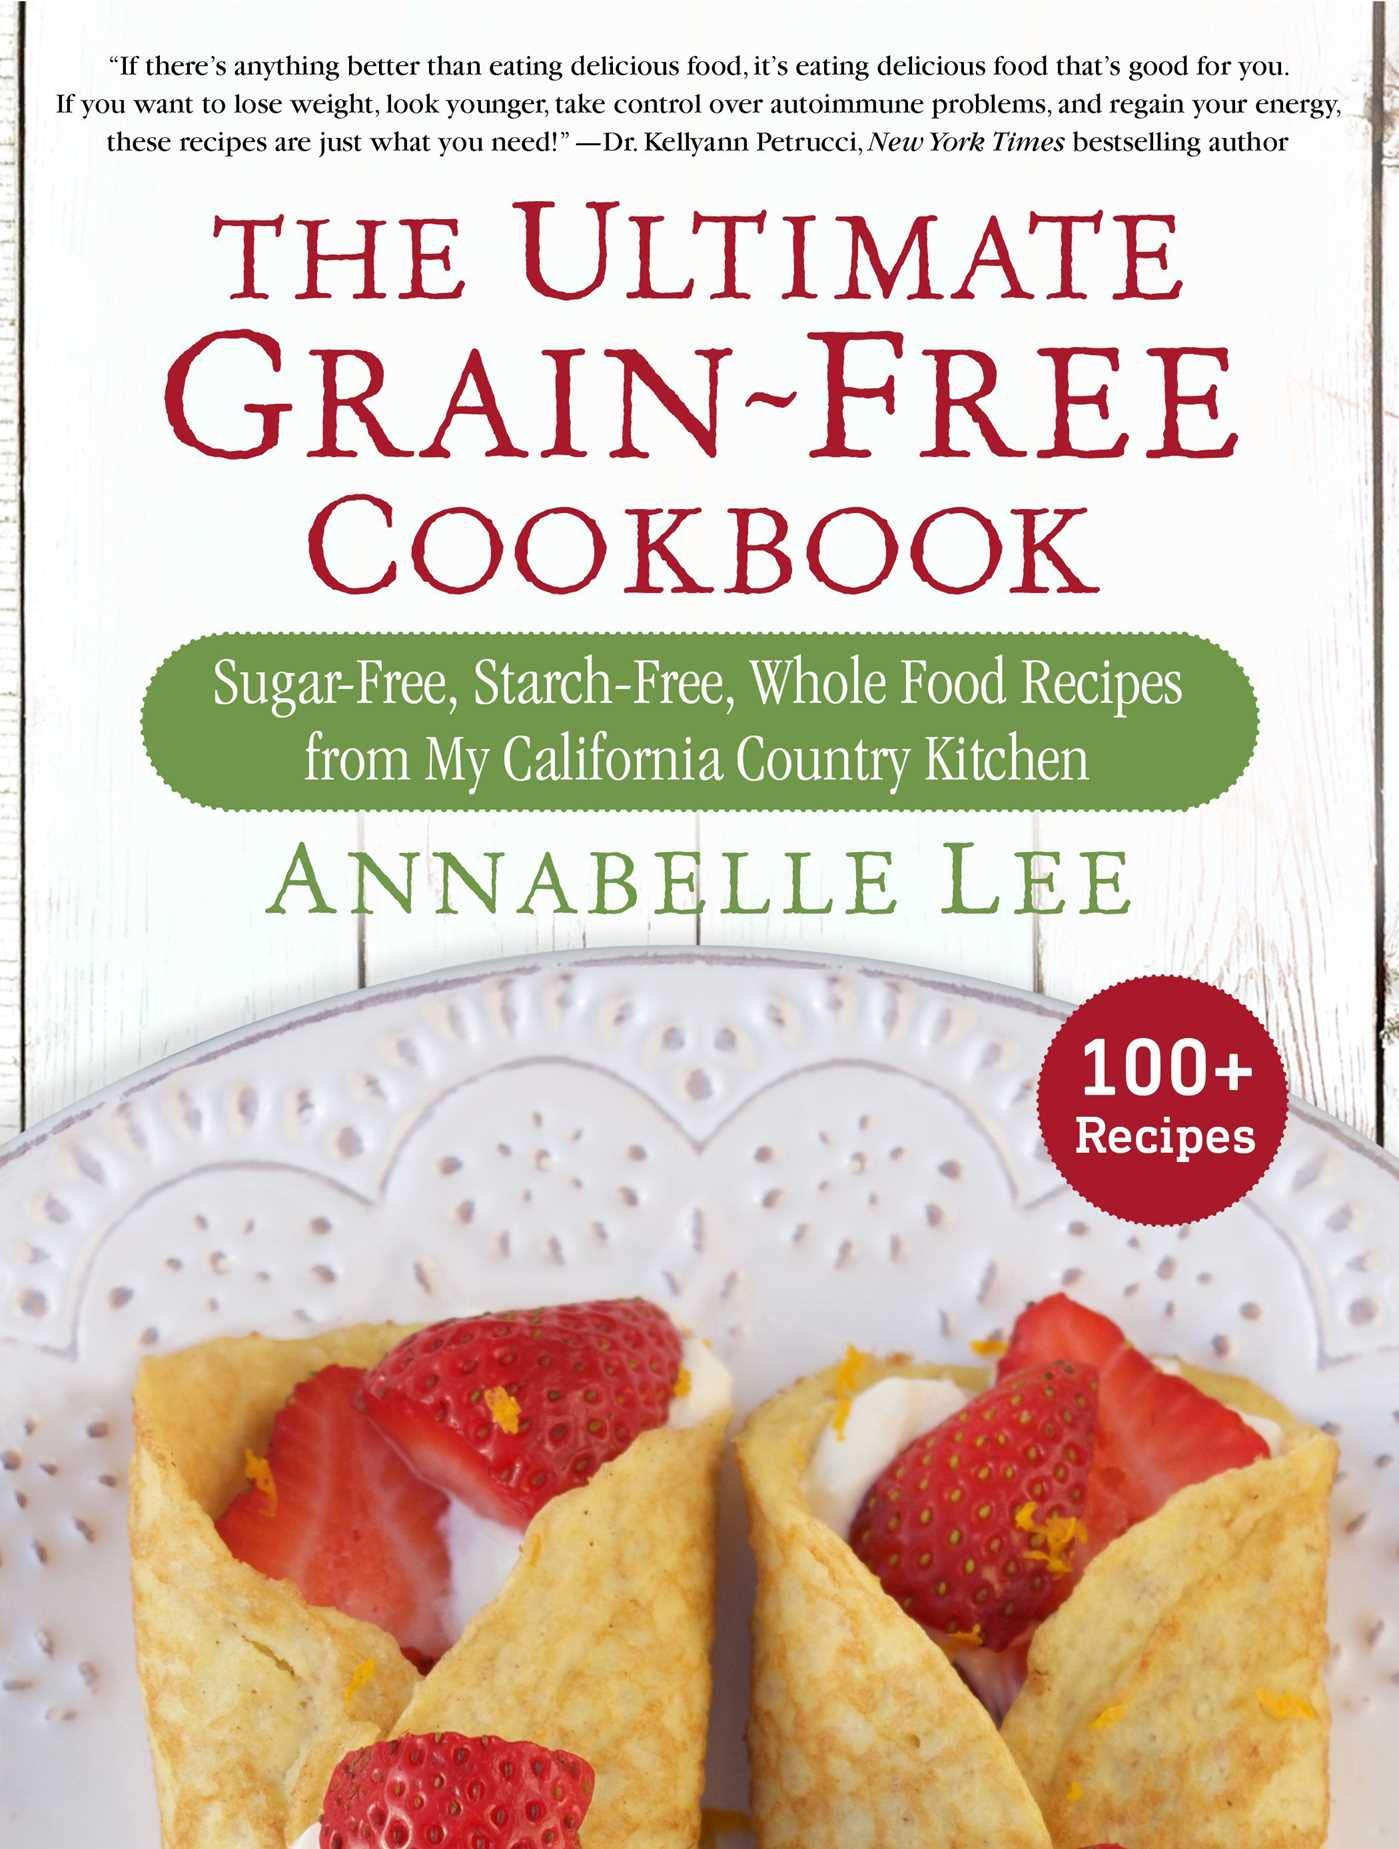 The Ultimate Grain-Free Cookbook: Sugar-Free, Starch-Free, Whole Food Recipes from My California Country Kitchen by Skyhorse